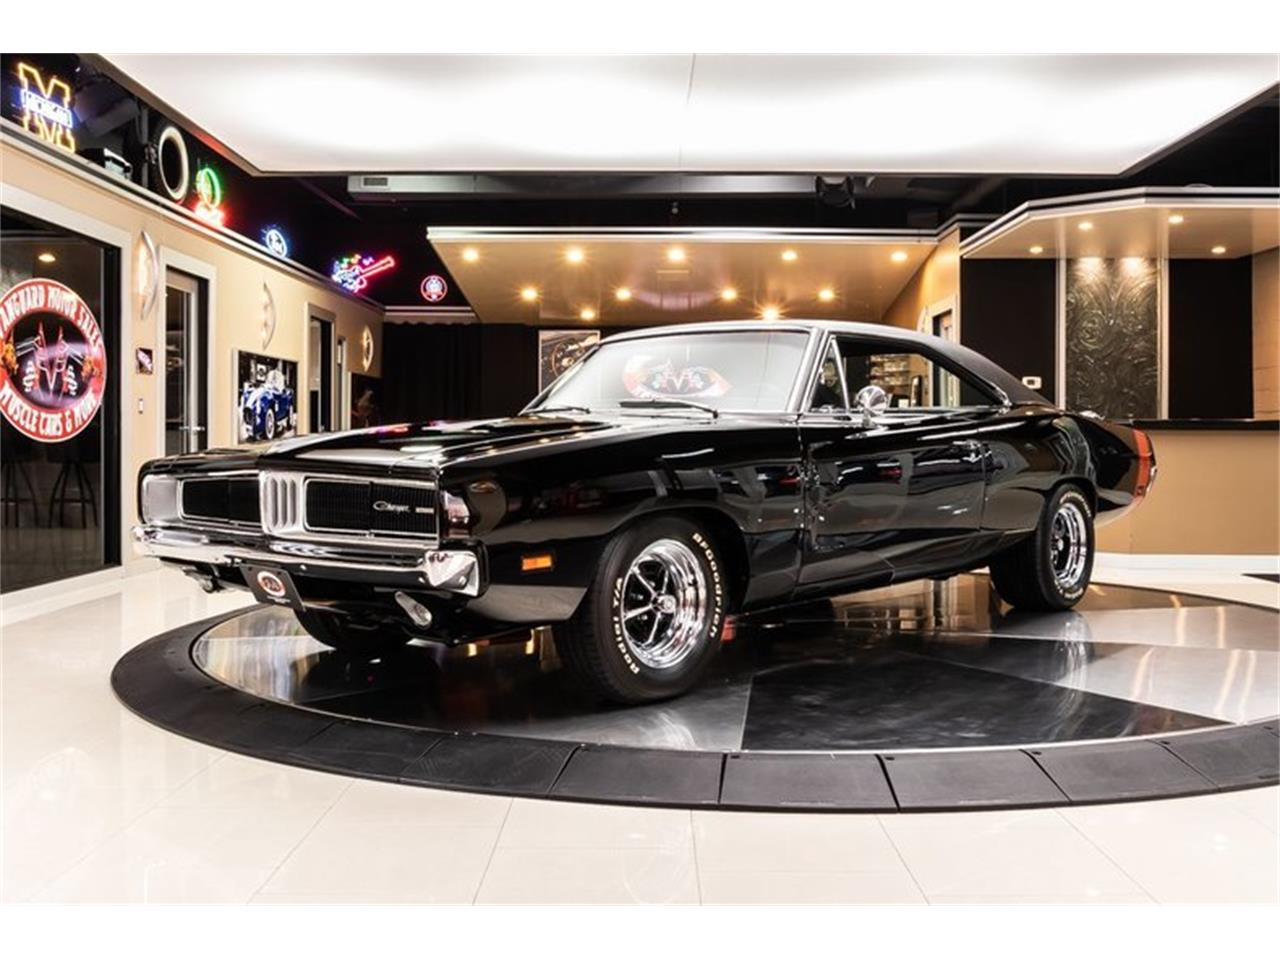 for sale 1969 dodge charger in plymouth, michigan cars - plymouth, mi at geebo